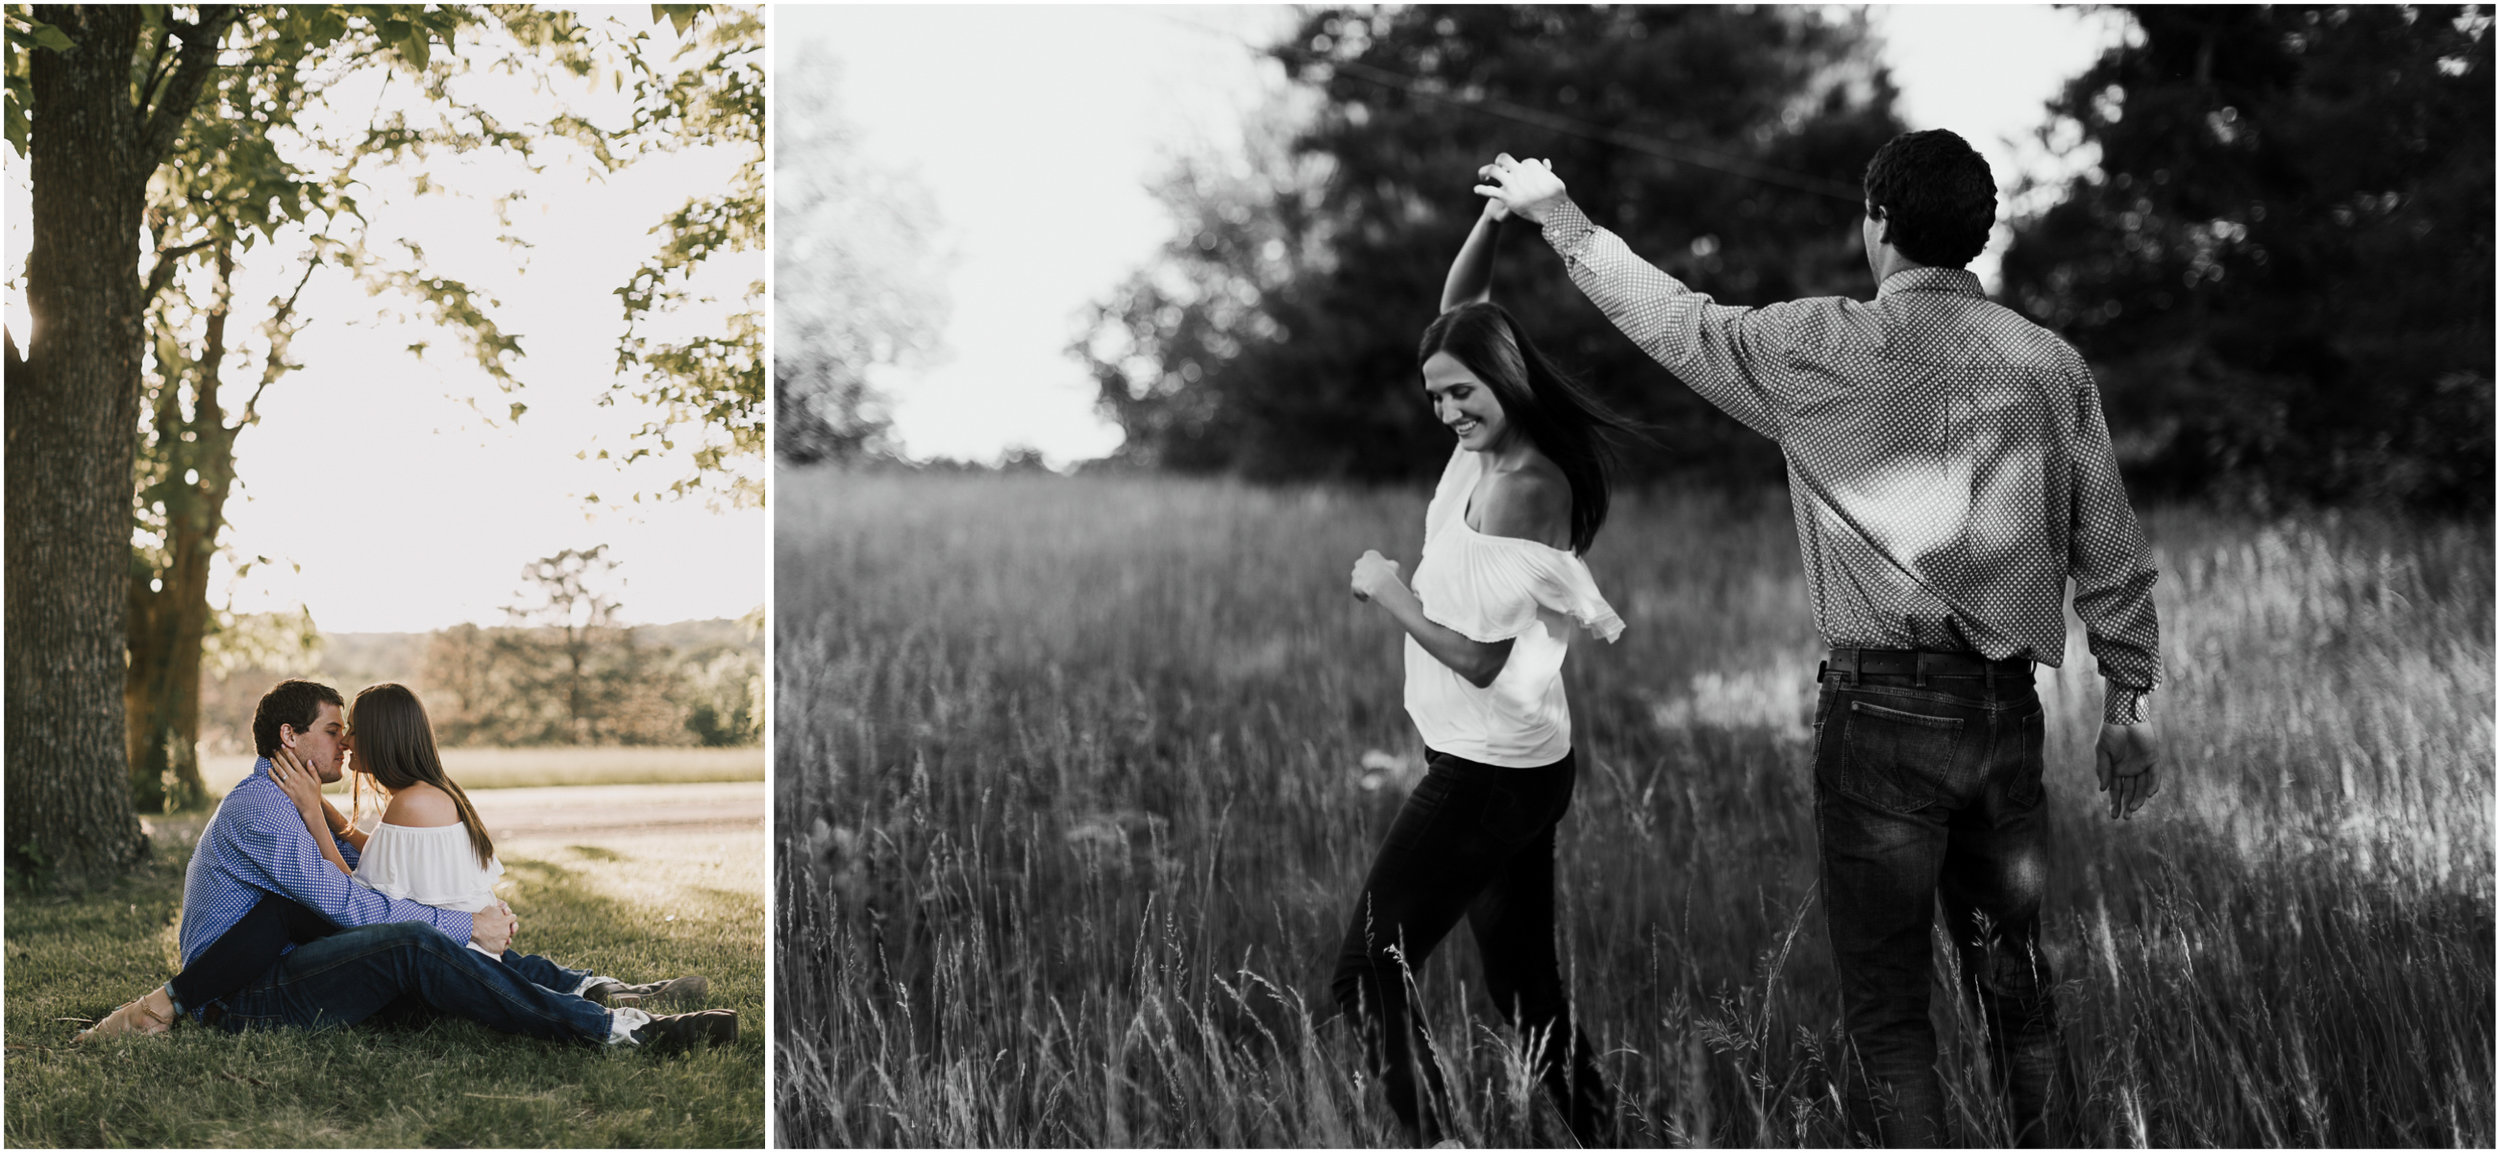 alyssa barletter photography shawnee mission park summer rustic done right engagement session-13.jpg